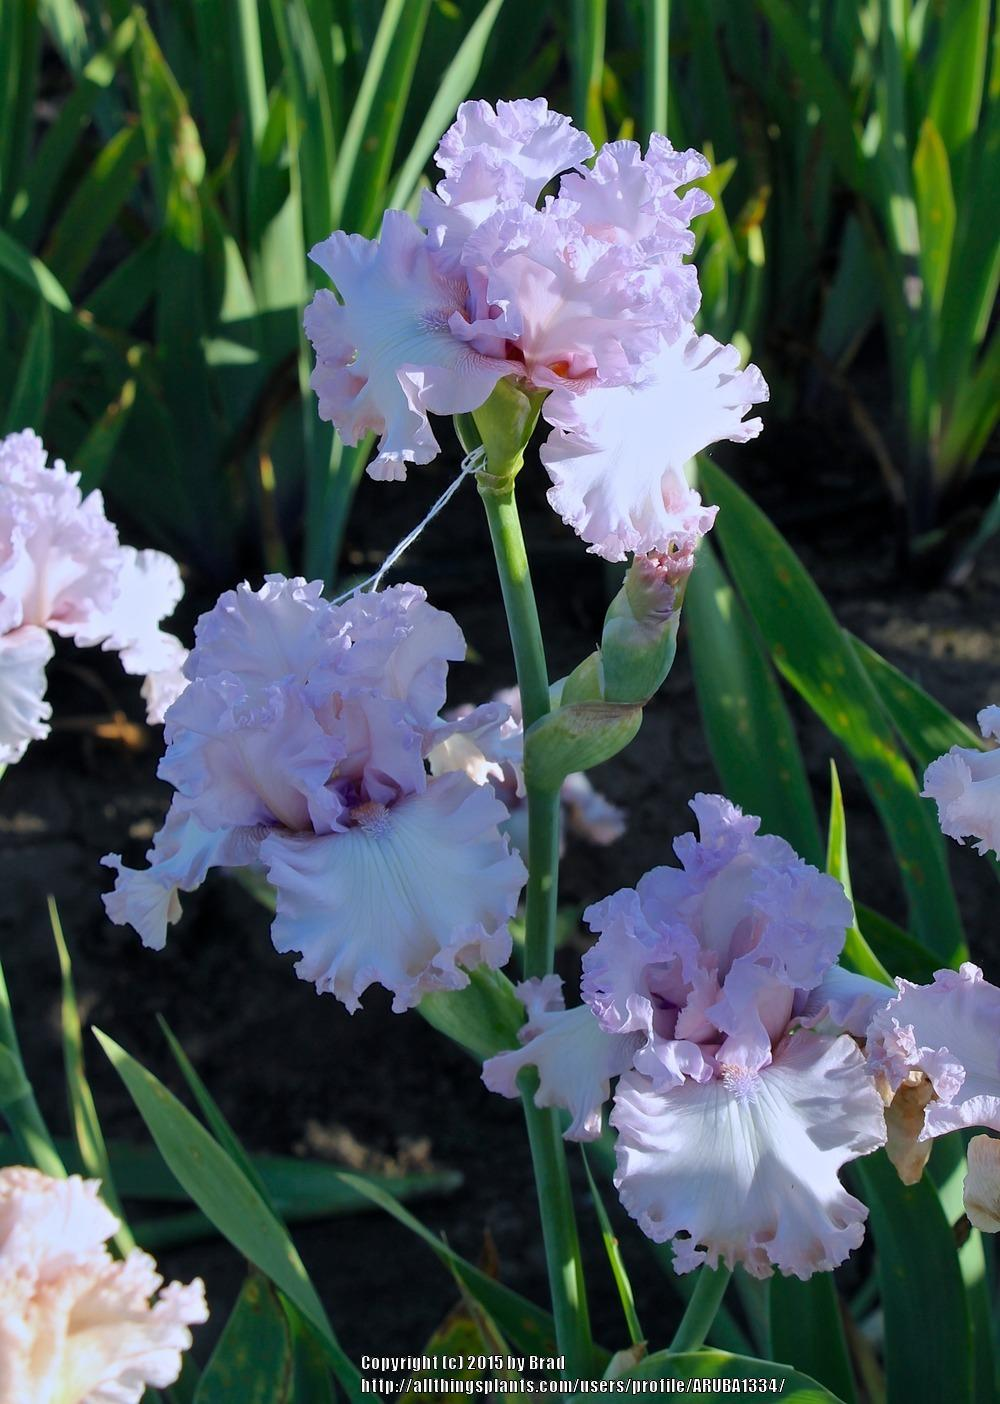 Photo Of The Bloom Of Tall Bearded Iris Iris Poem Of Love Posted